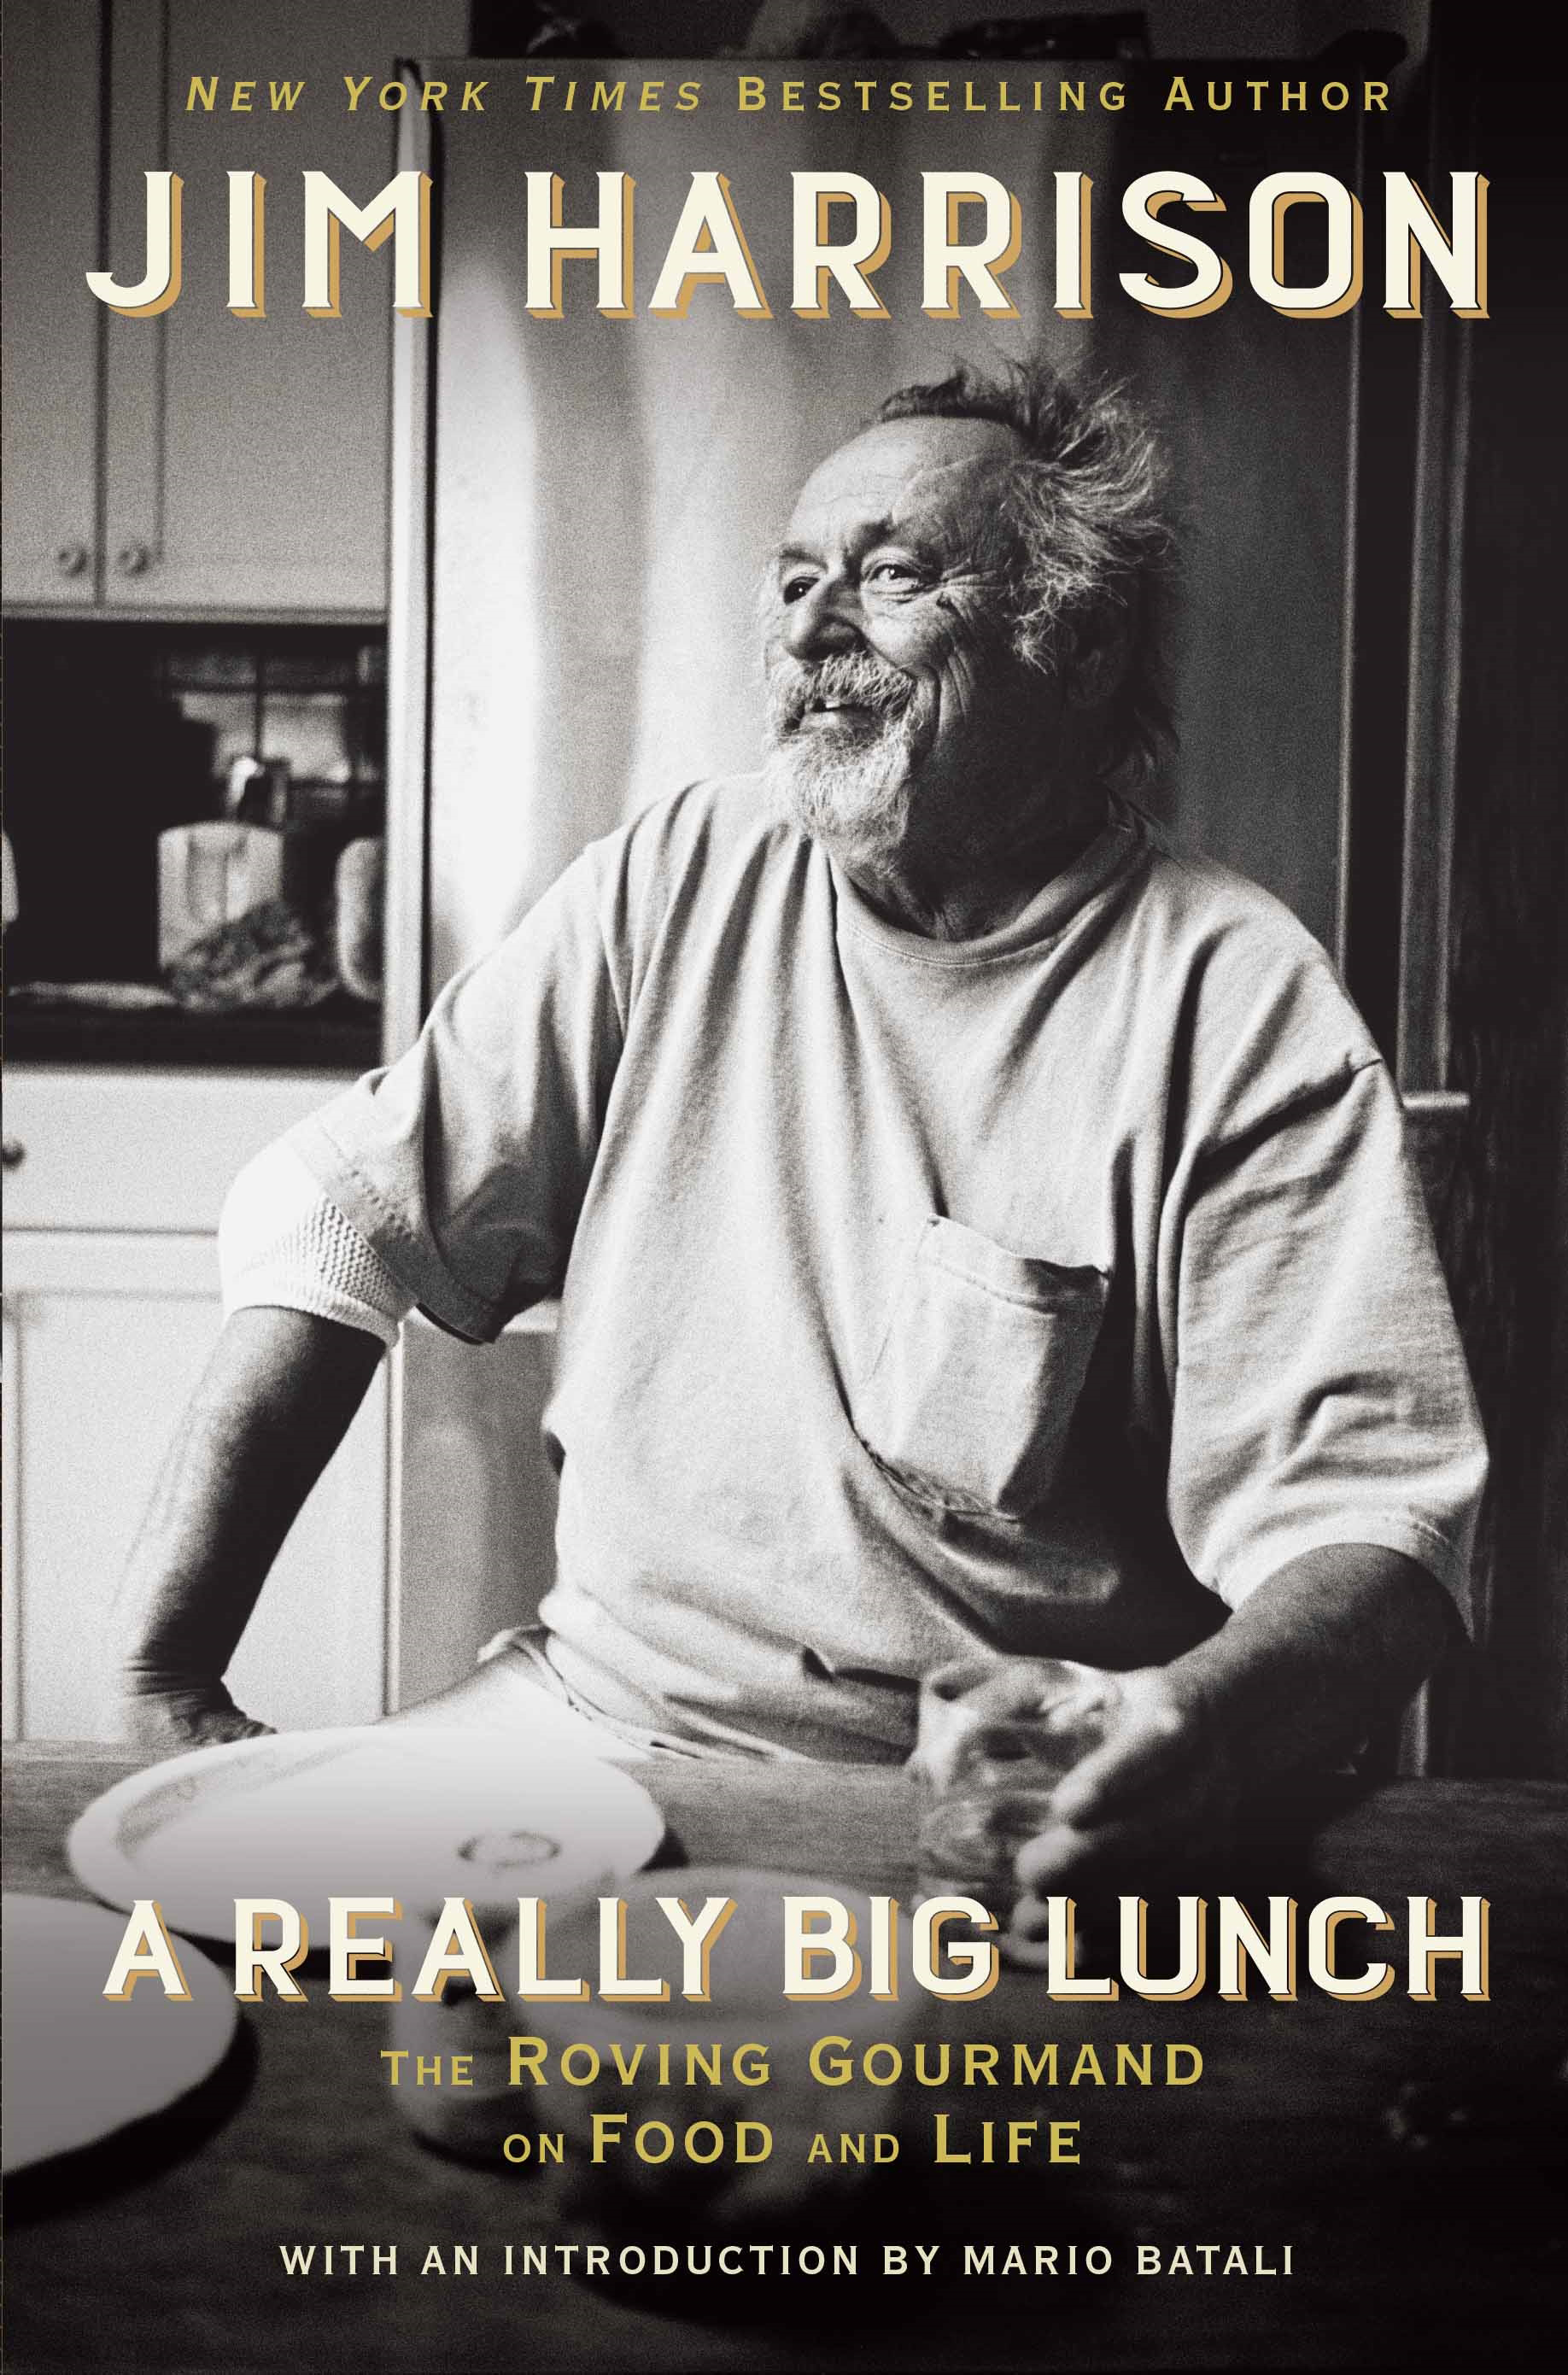 A Really Big Lunch by Jim Harrison, Introduction By Mario Batali, ISBN: 9781611856231